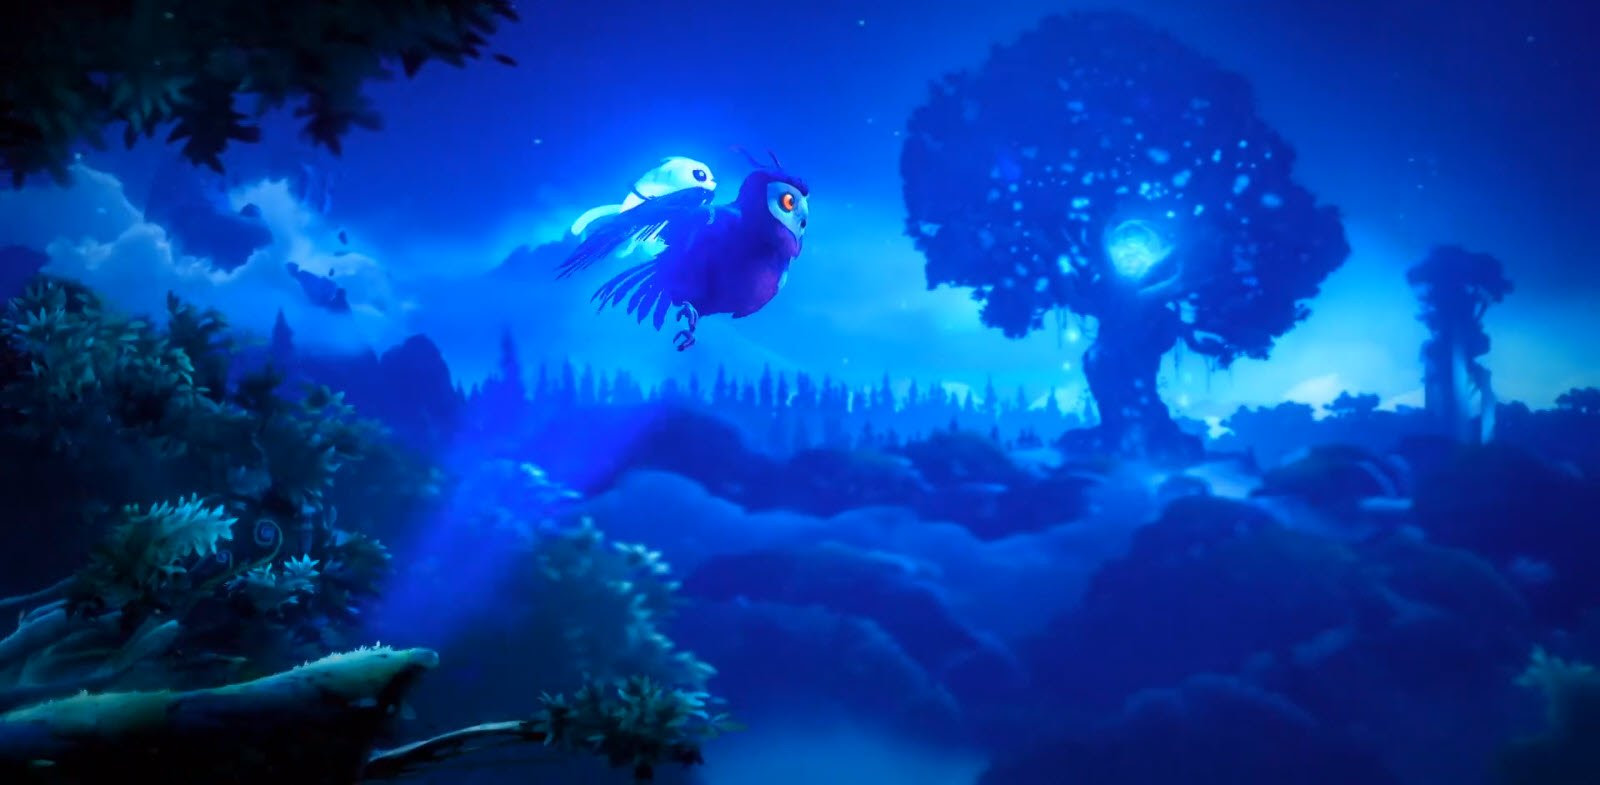 Ori and the Will of the Wisps sure looks breathtaking screenshot